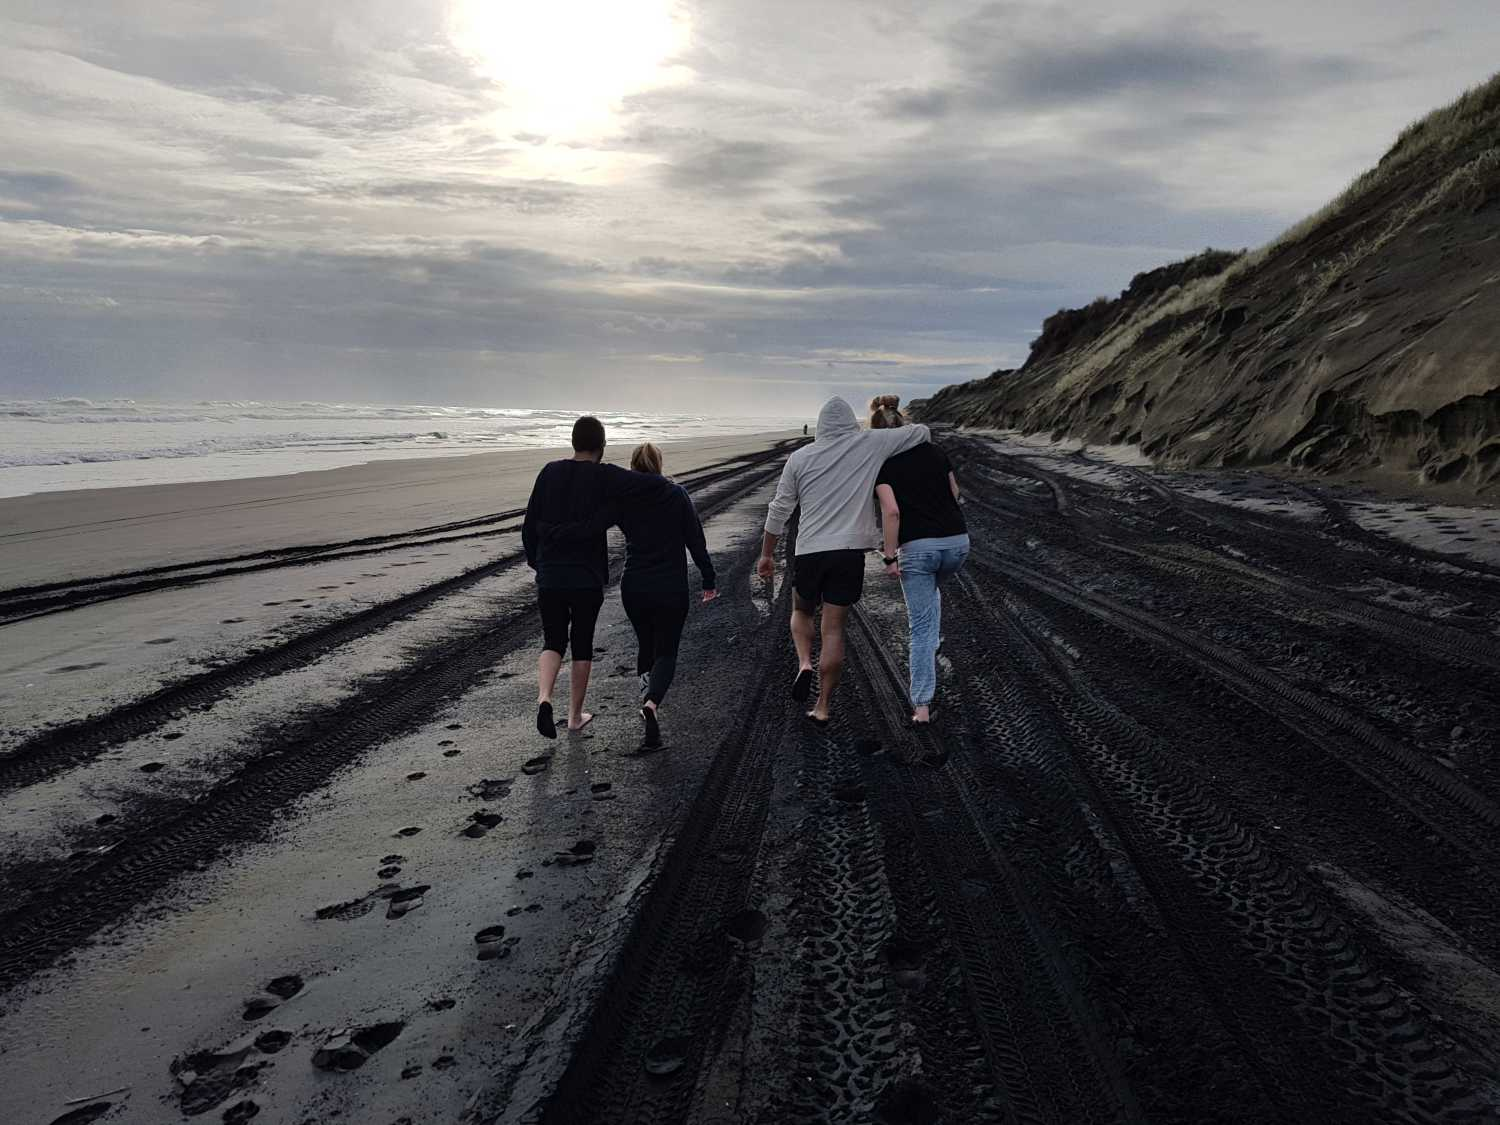 Tour group strolling along Muriwai's black sand